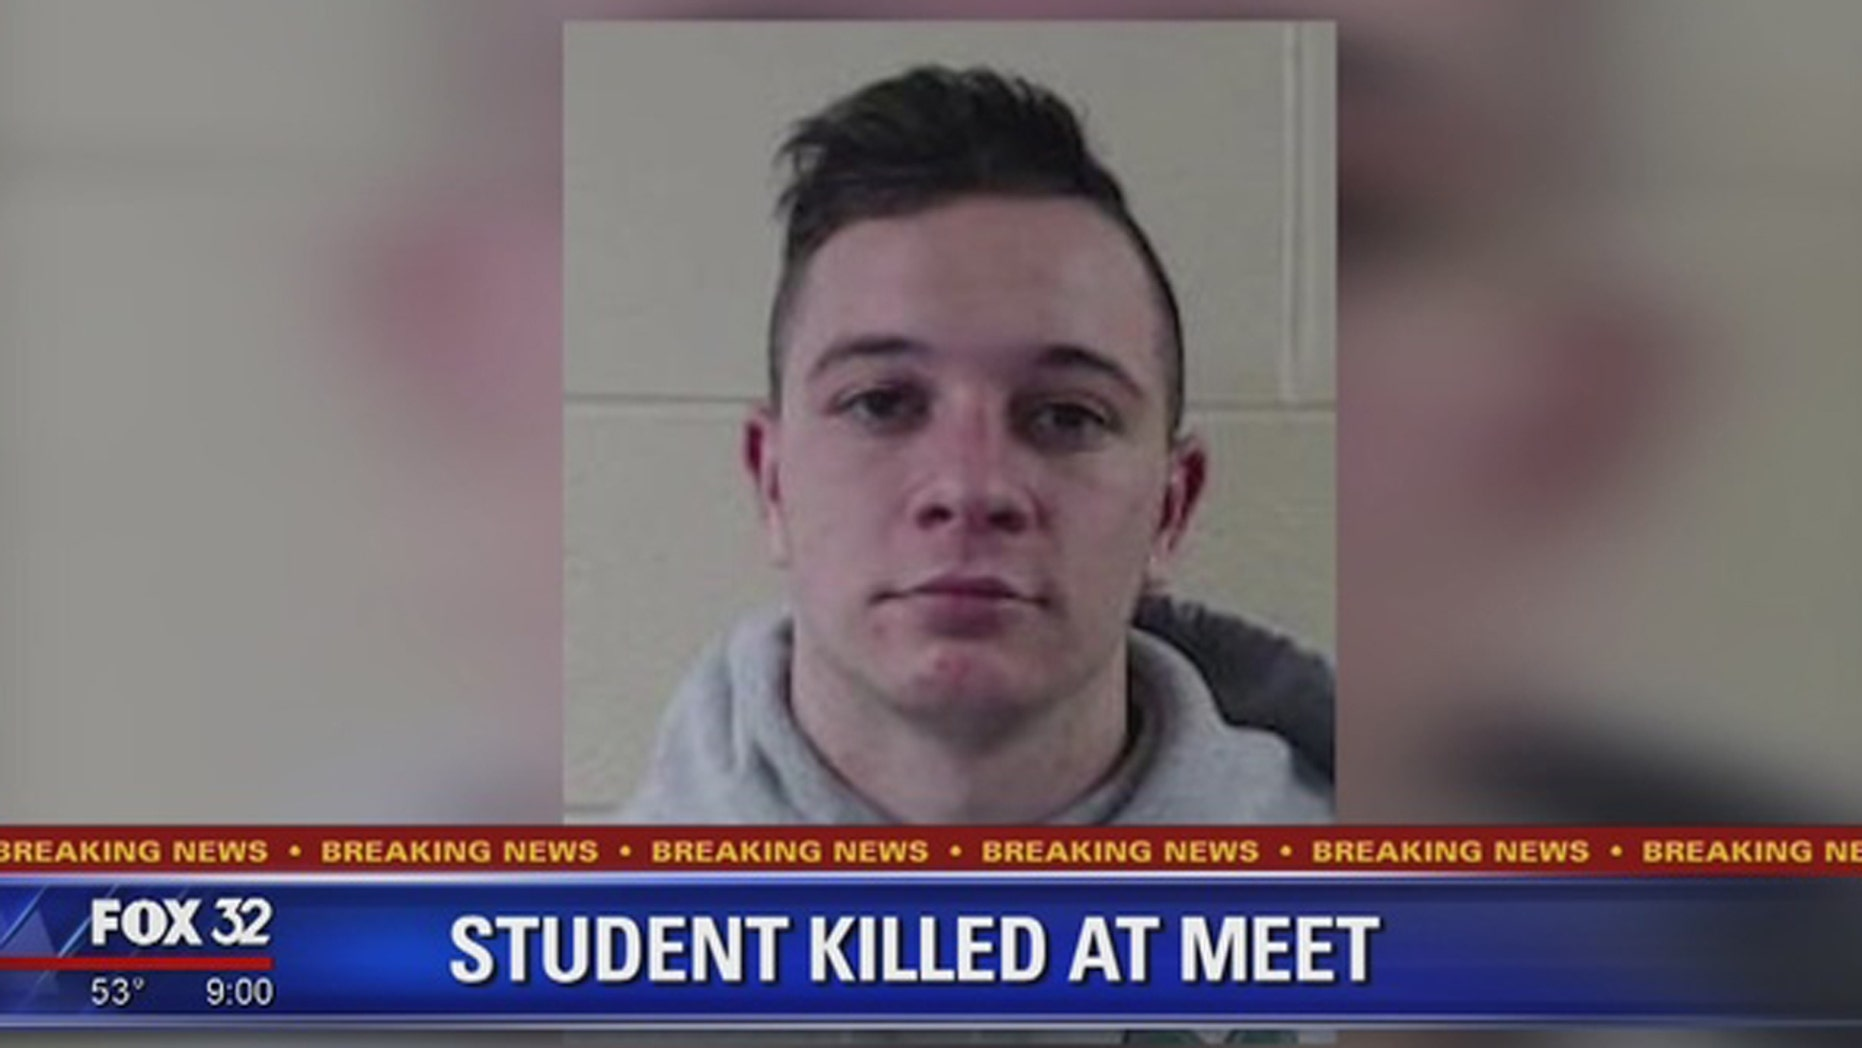 A college student was killed on Saturday during a track and field meet in suburban Chicago.